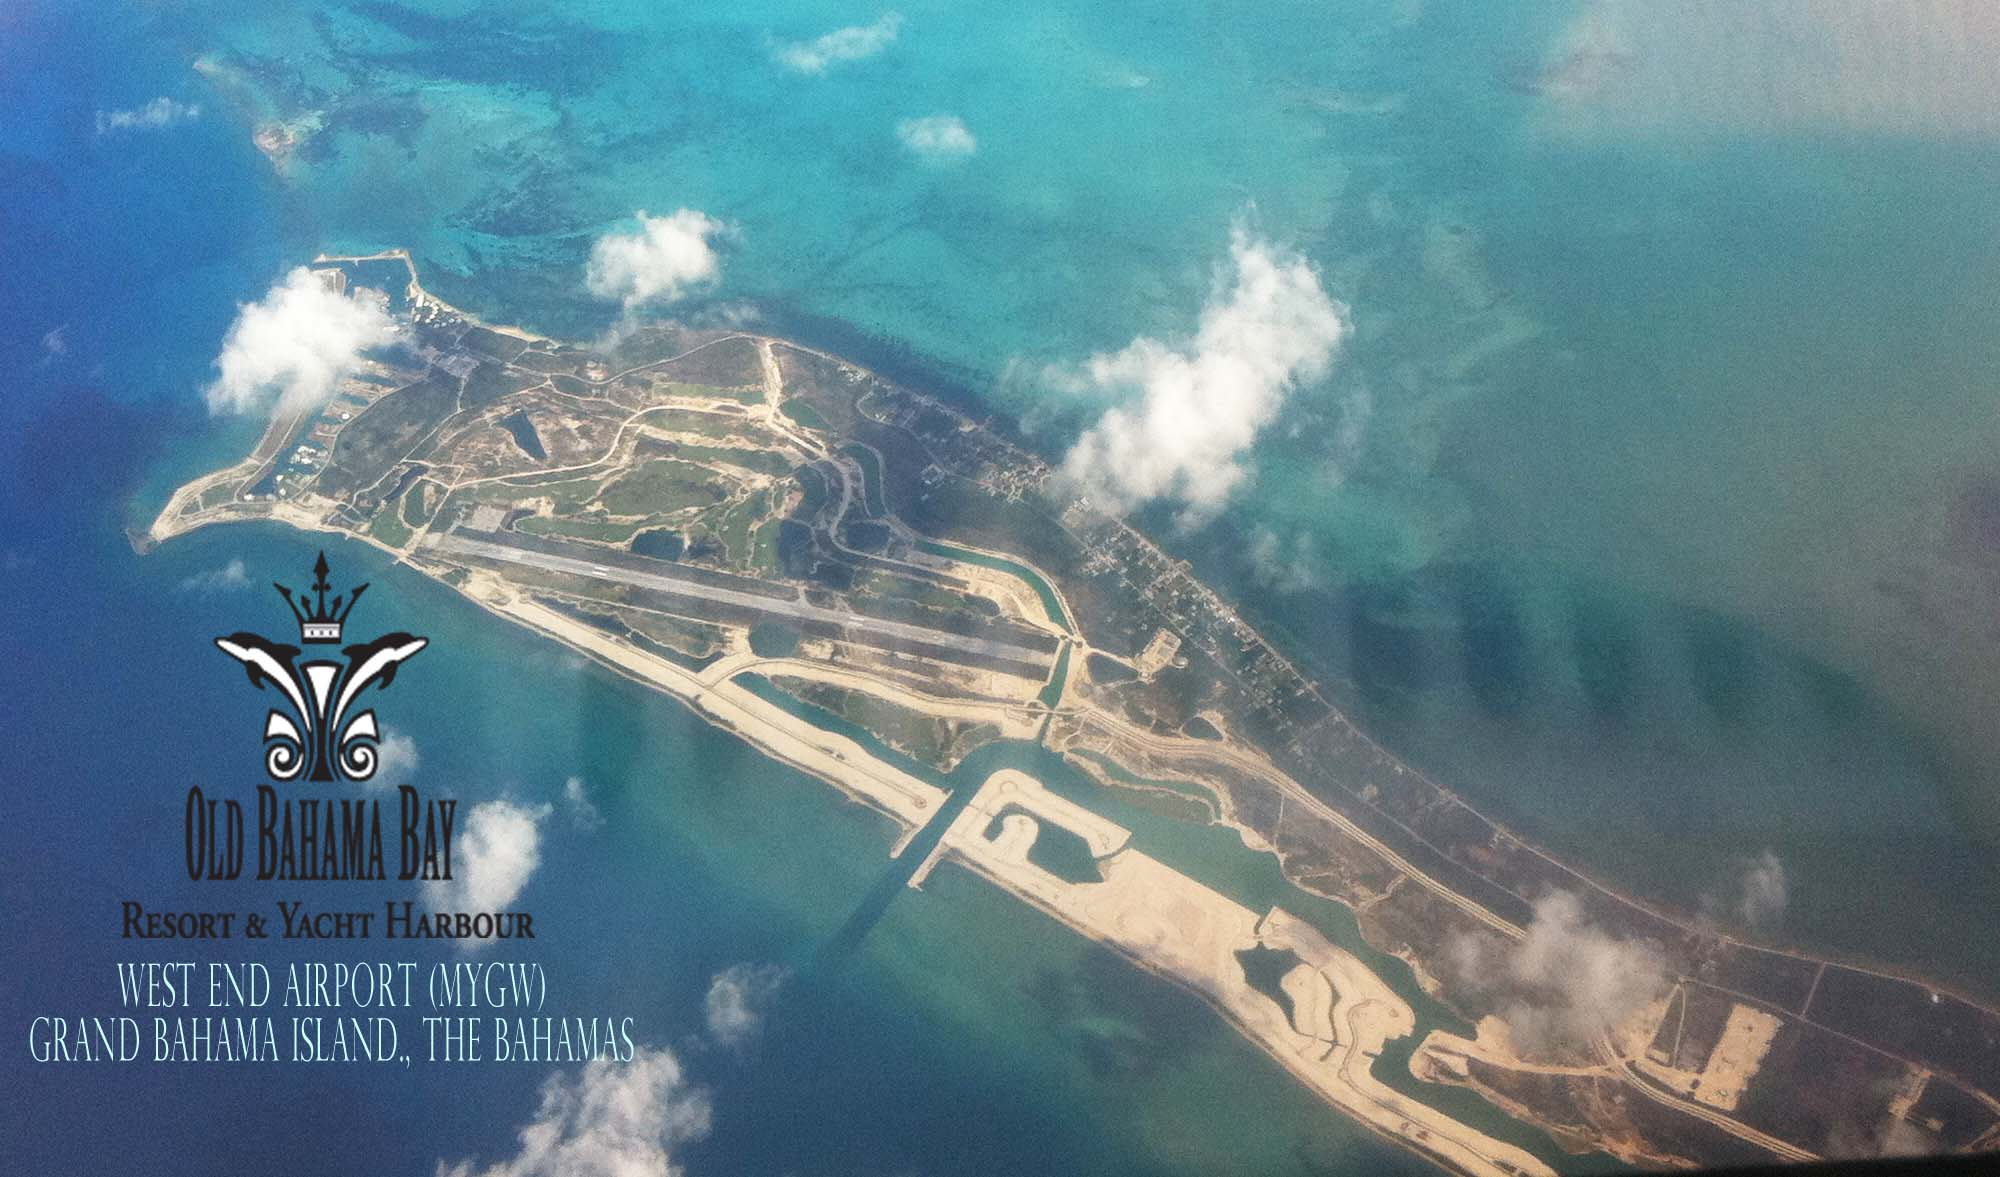 The West End Airport Grand Bahama Island The Bahamas Now Open to Private Pilots and Charter